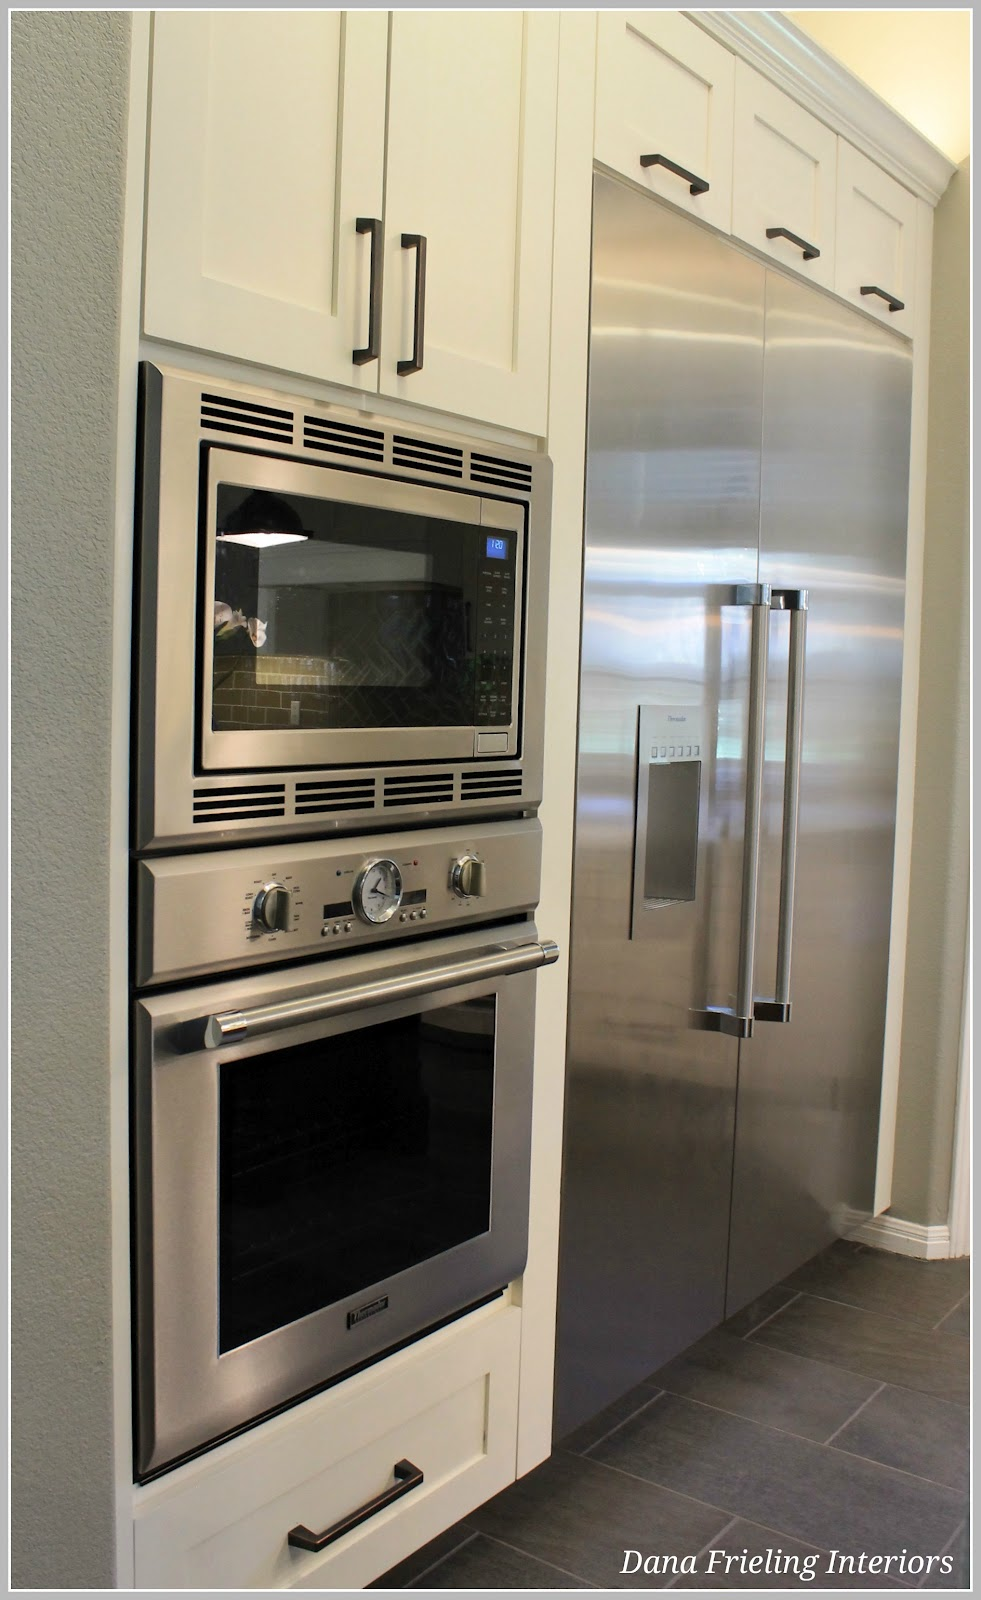 Make them wonder kitchen remodel before and after for Kitchen remodel refrigerator